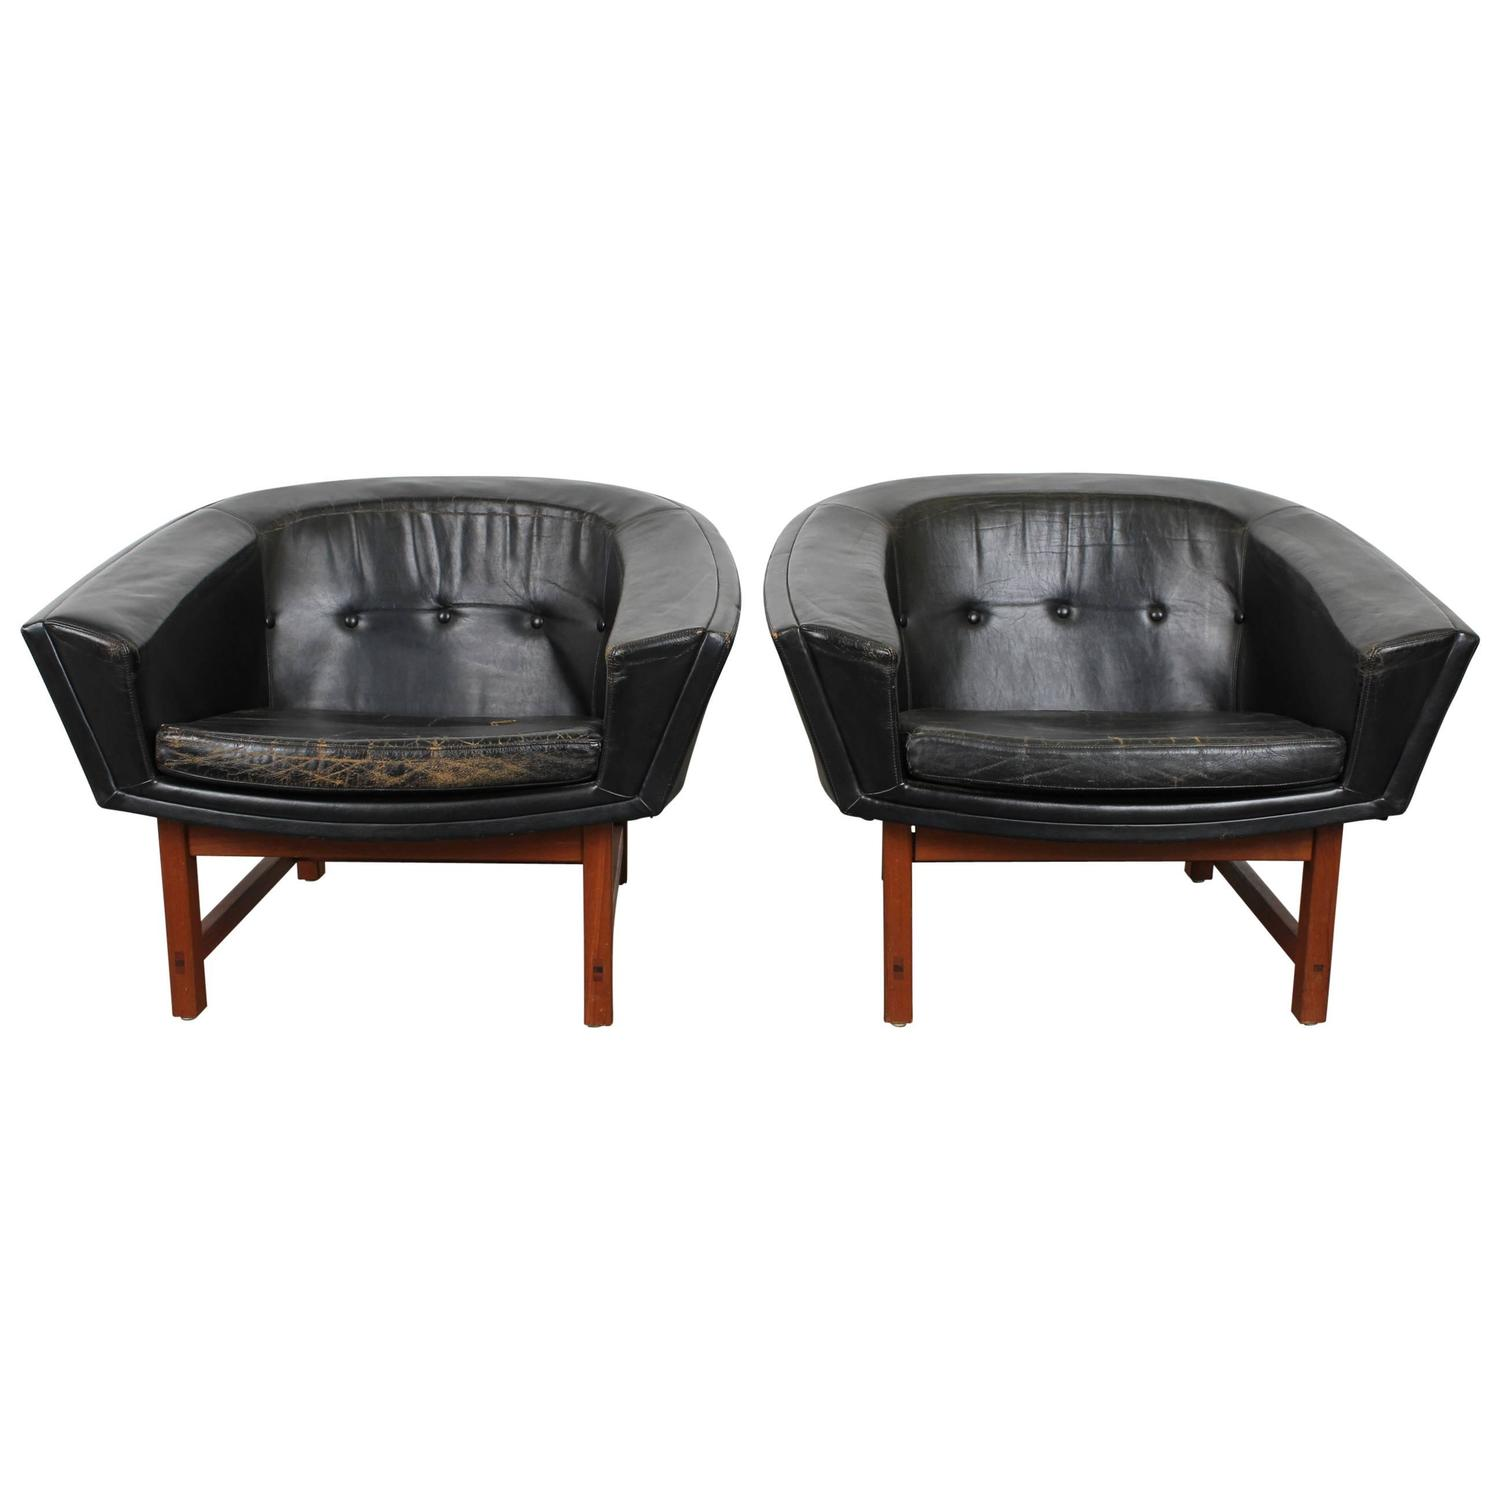 Pair of Mid Century Modern Black Leather Chairs by Lennart Bender